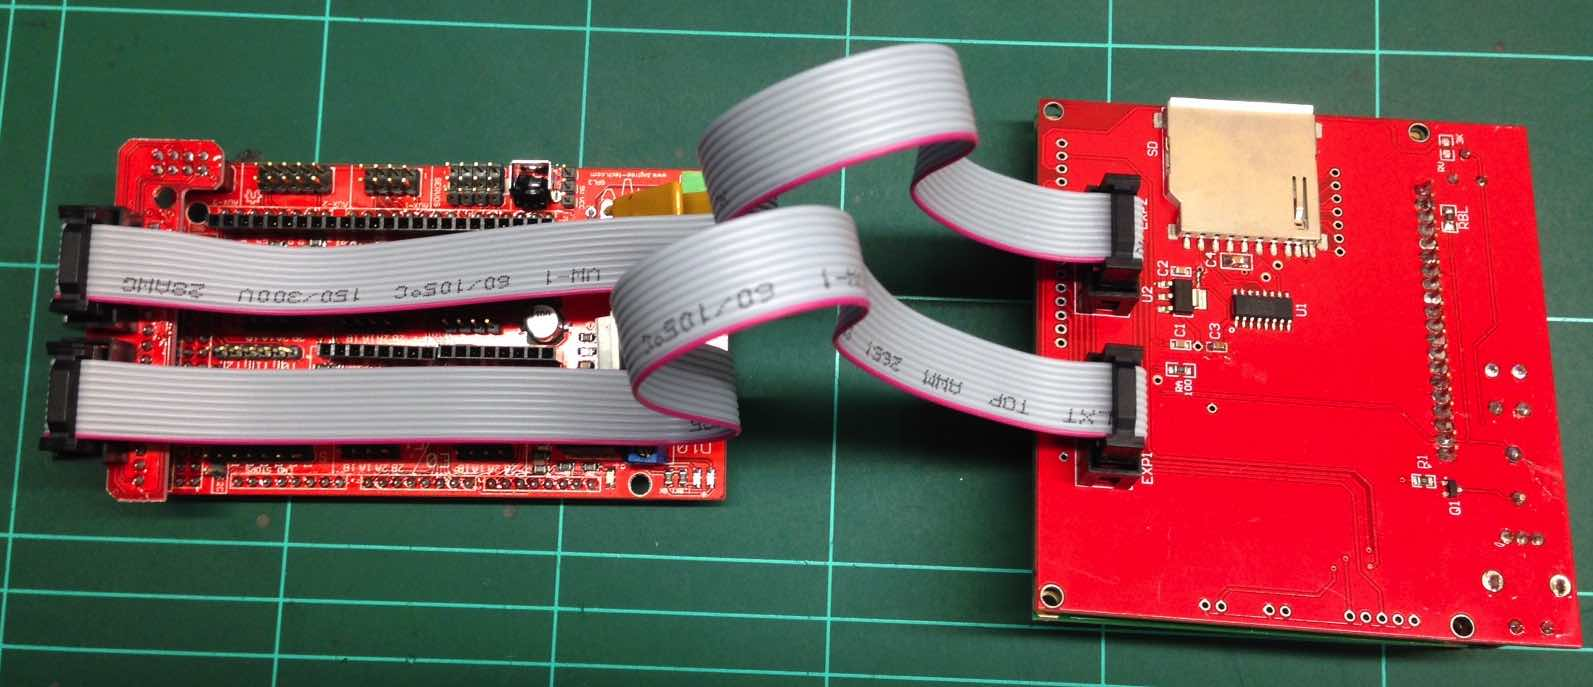 Not Another Ramps Tutorial 3dtek Ramps14 Geeetech Wiki Note That The Lcd Controller Wont Appear To Work Until You Have Configured Software And Told It There Is An Interface Manage